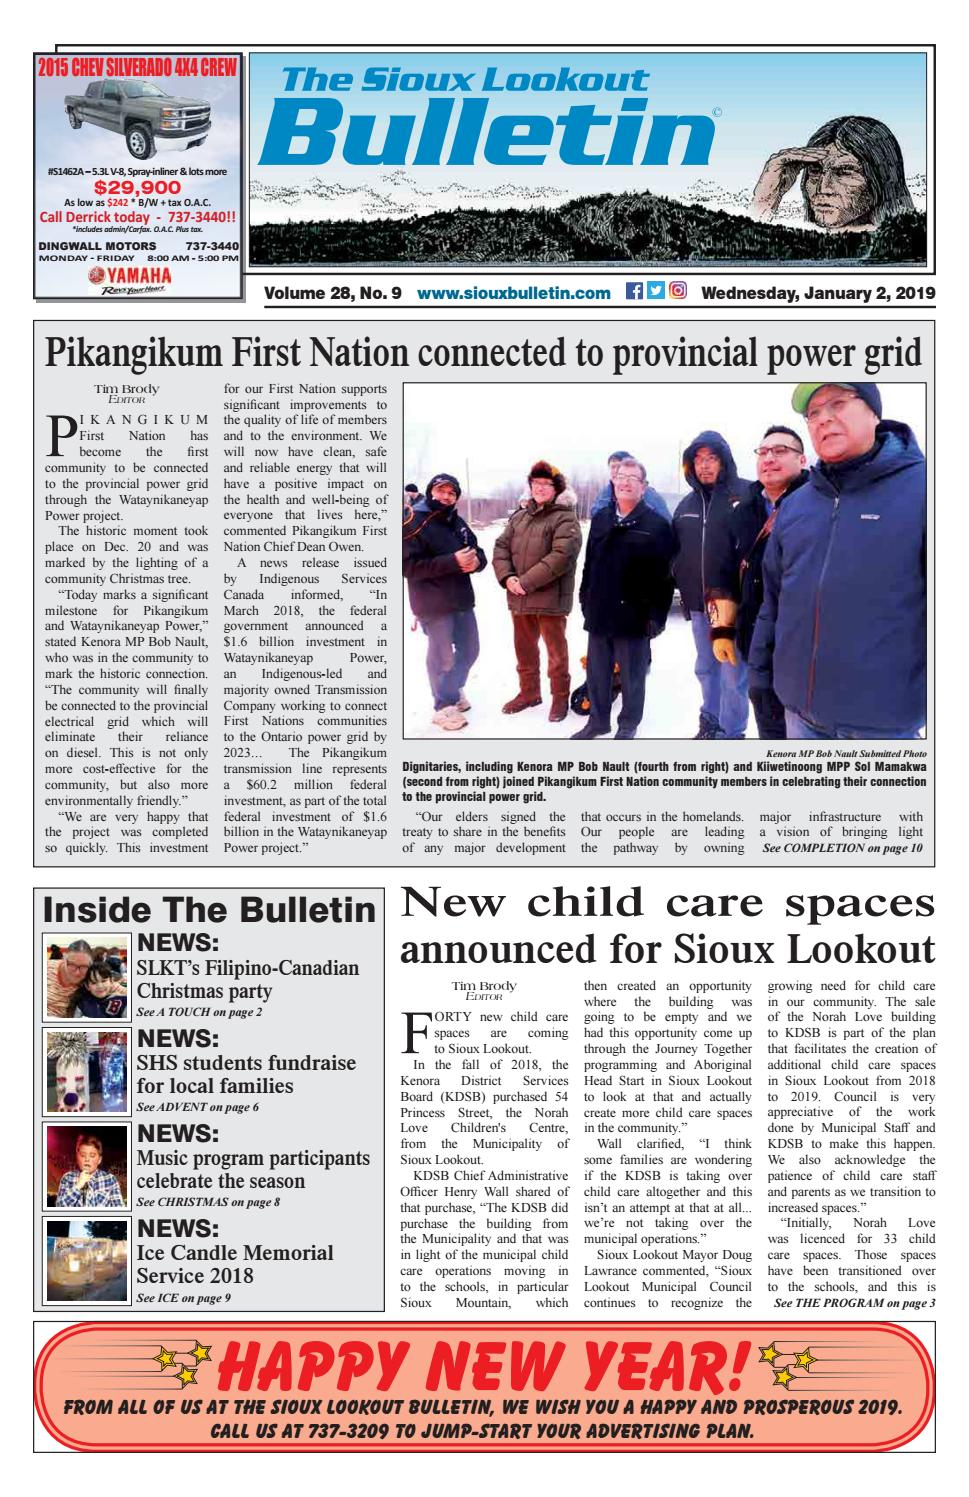 The Sioux Lookout Bulletin - Volume 28 - No  9, January 2